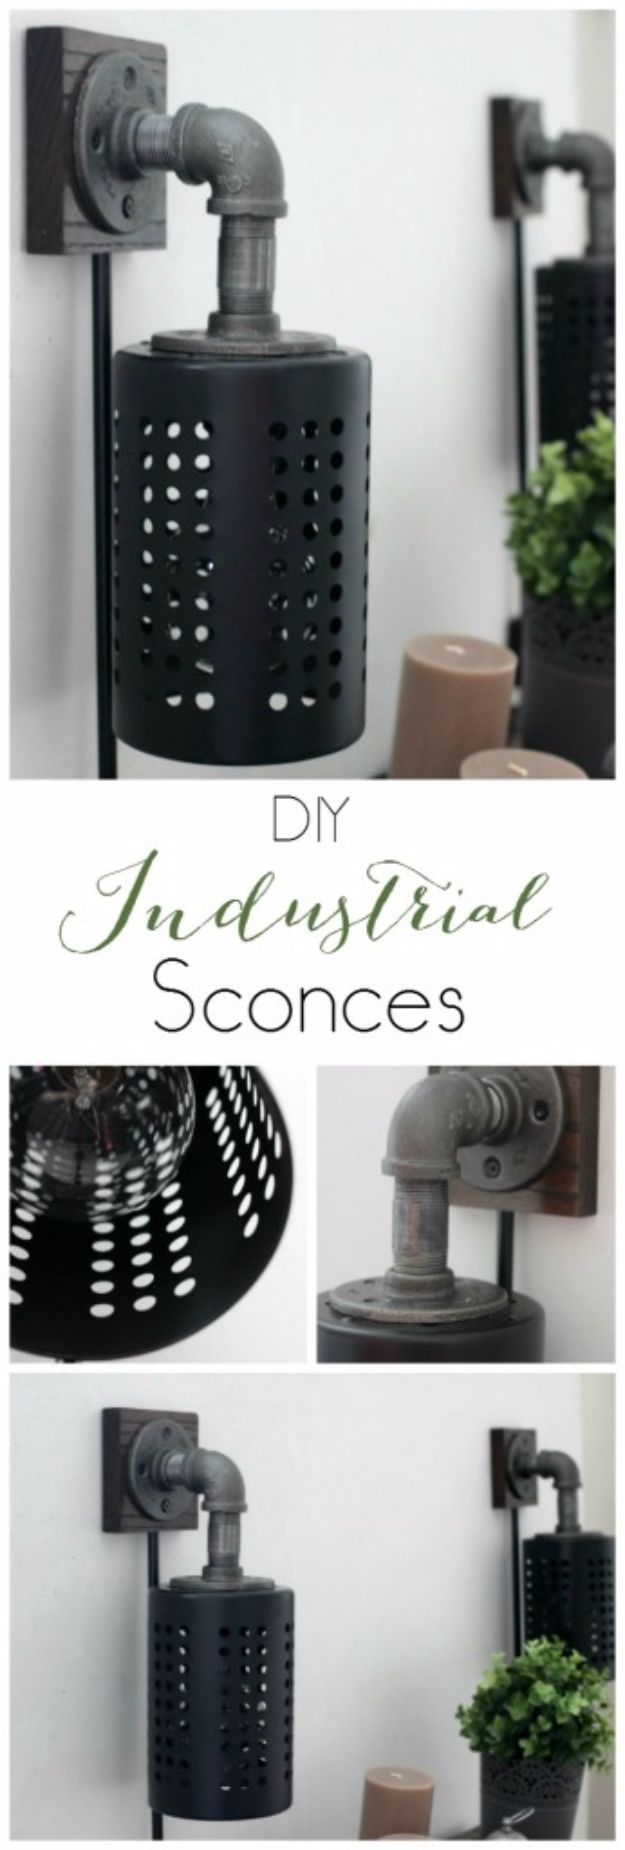 DIY Lighting Ideas and Cool DIY Light Projects for the Home - Make Your Own DIY Industrial Sconces - Easy DIY Ideas for Chandeliers, lights, lamps, awesome pendants and creative hanging fixtures, complete with tutorials with instructions. Cheap do it yourself lighting tutorials for indoor - bedroom, living room, bathroom, kitchen DIY Projects and Crafts for Women and Men http://diyjoy.com/diy-indoor-lighting-ideas